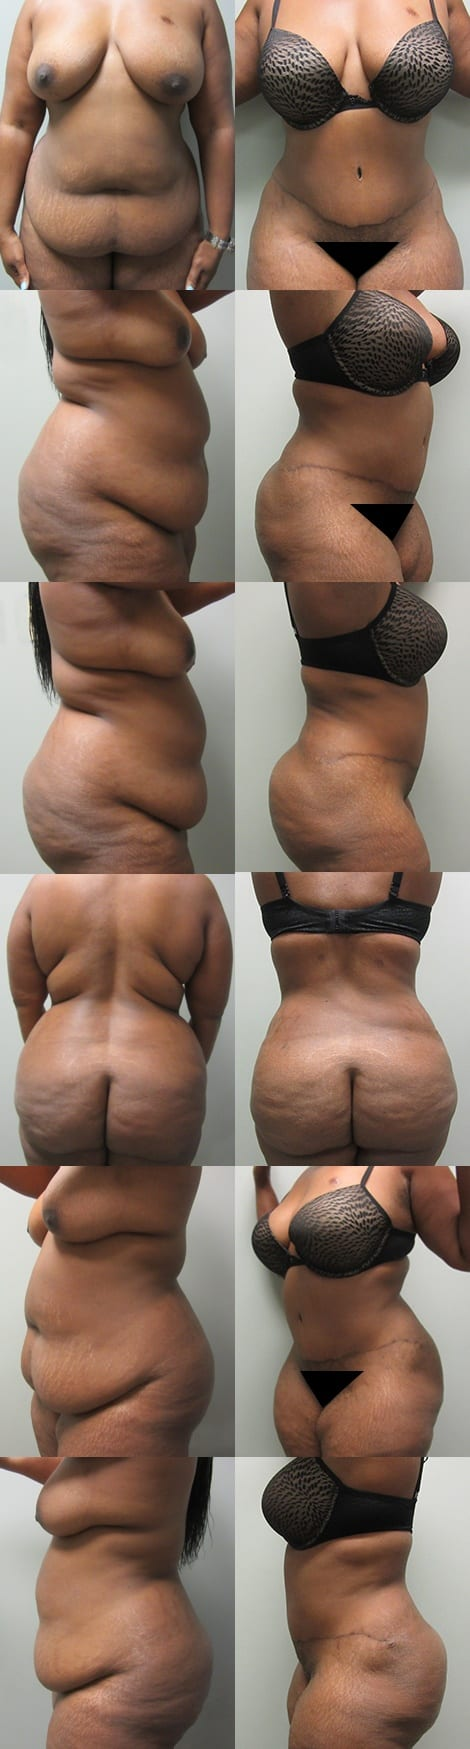 Tummy Tuck Fort Worth Case 4